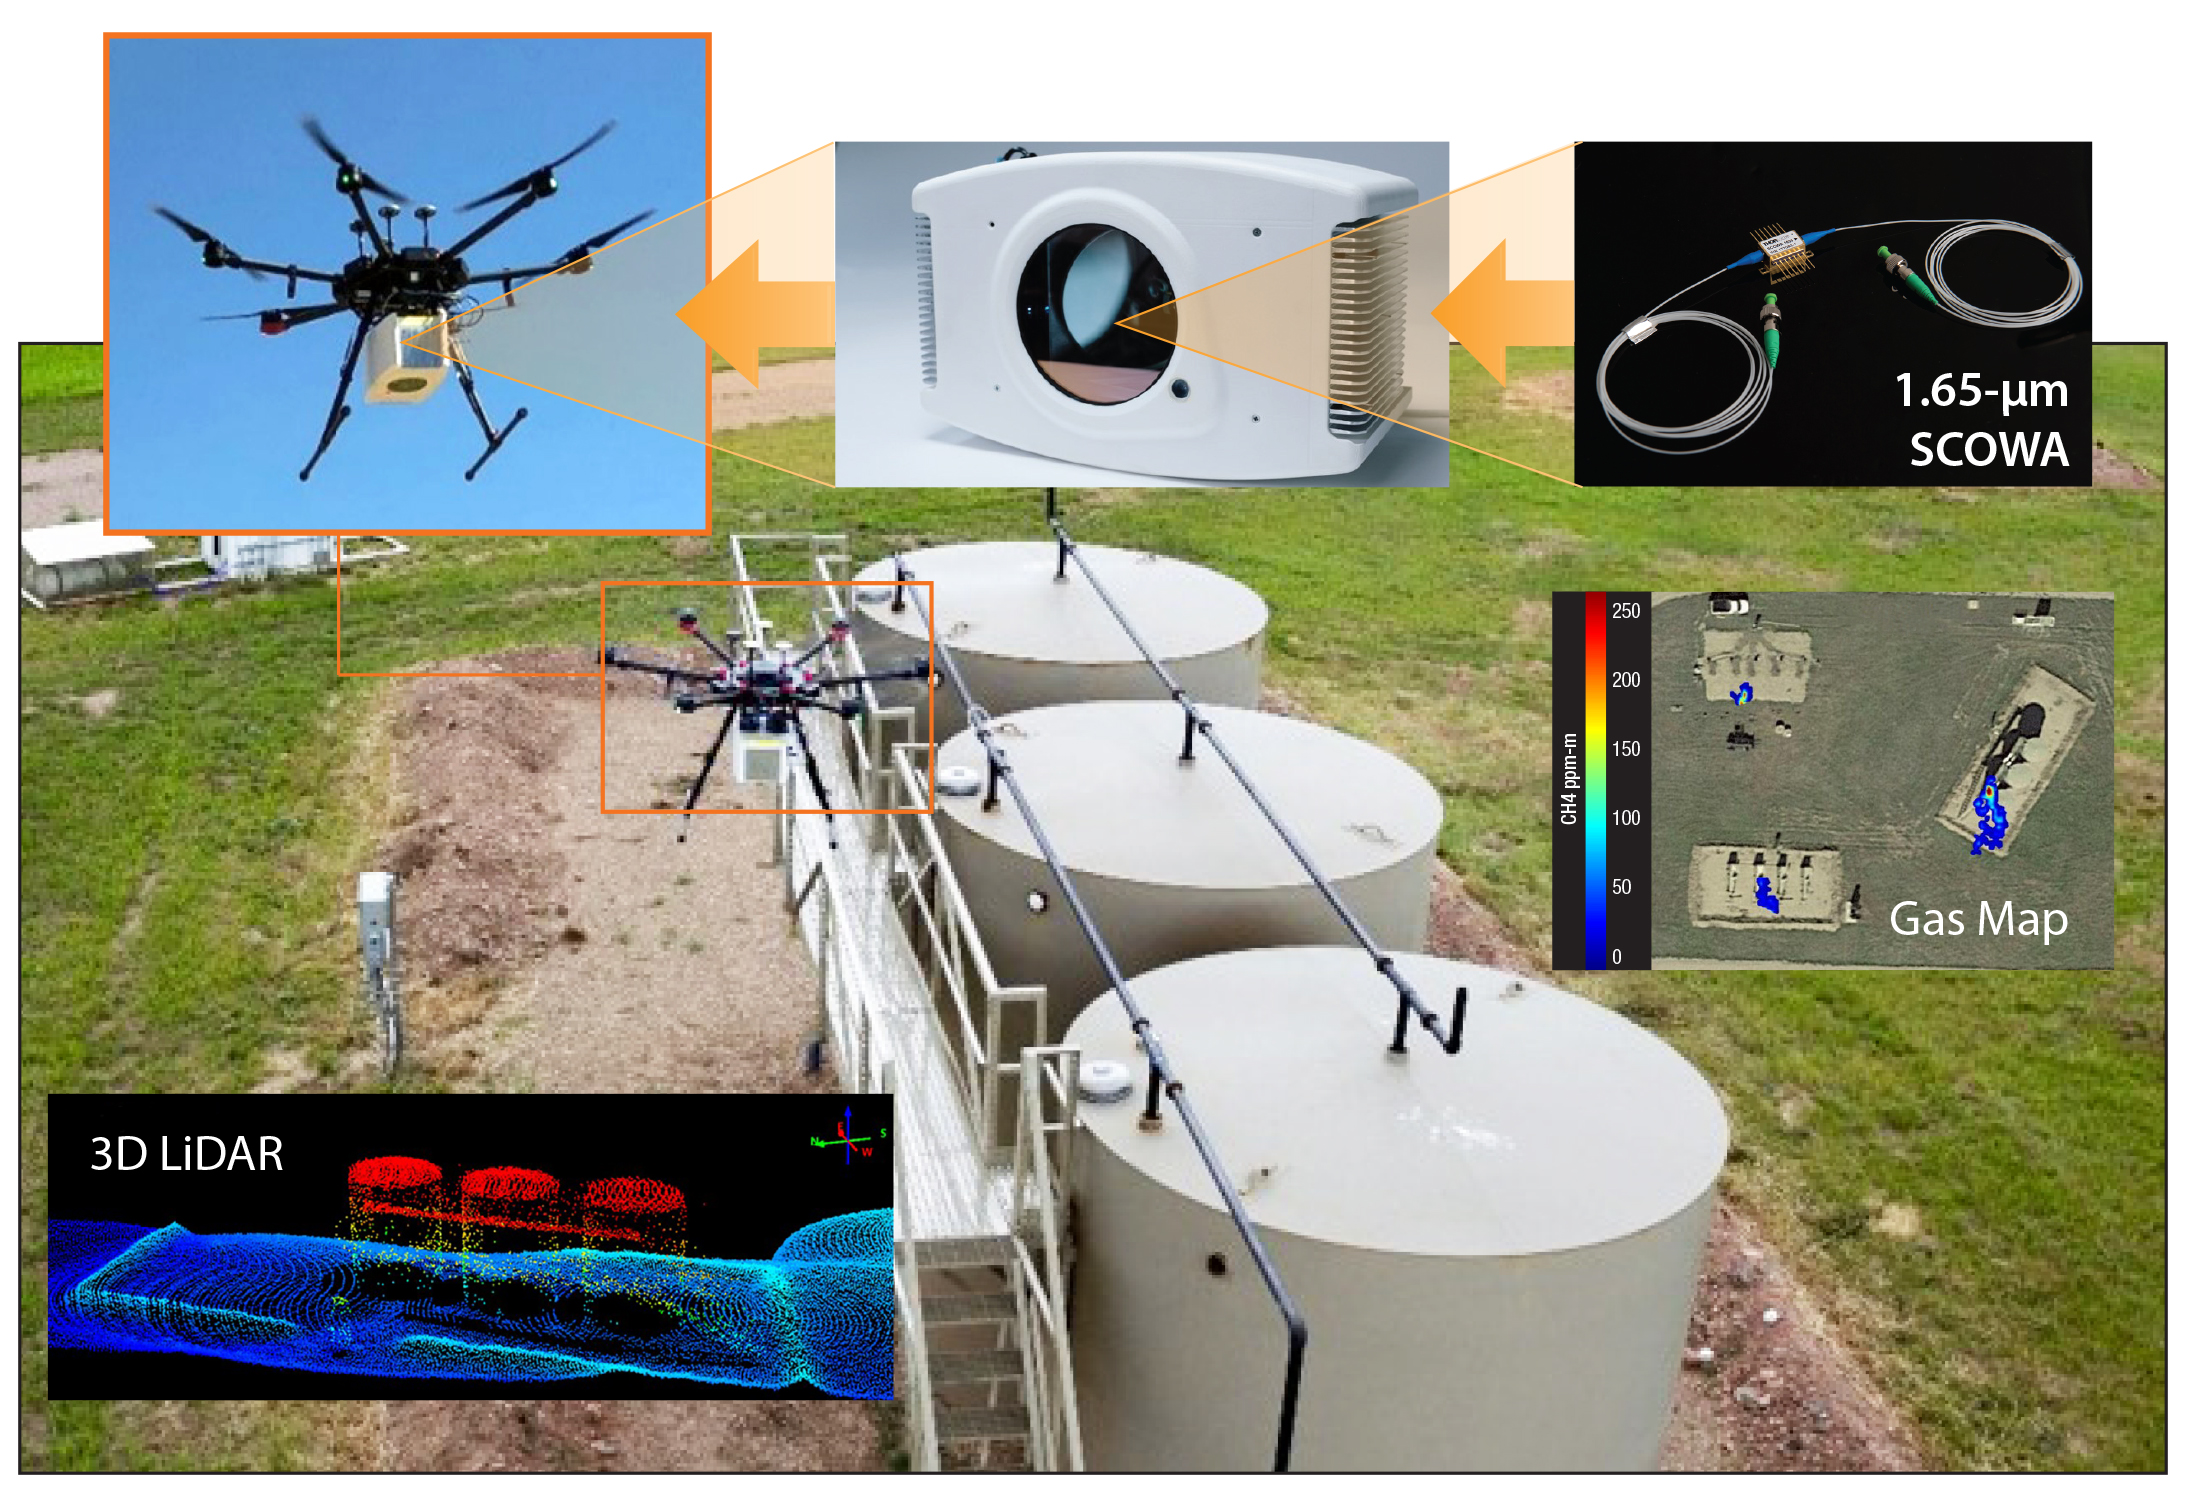 The drone-based Gas Mapping LiDAR™ system incorporates a 1.65-μm slab-coupled optical waveguide amplifier, top right. Also shown are a representative methane-gas map, lower right inset, and a 3D lidar image, lower left, collected by the system.